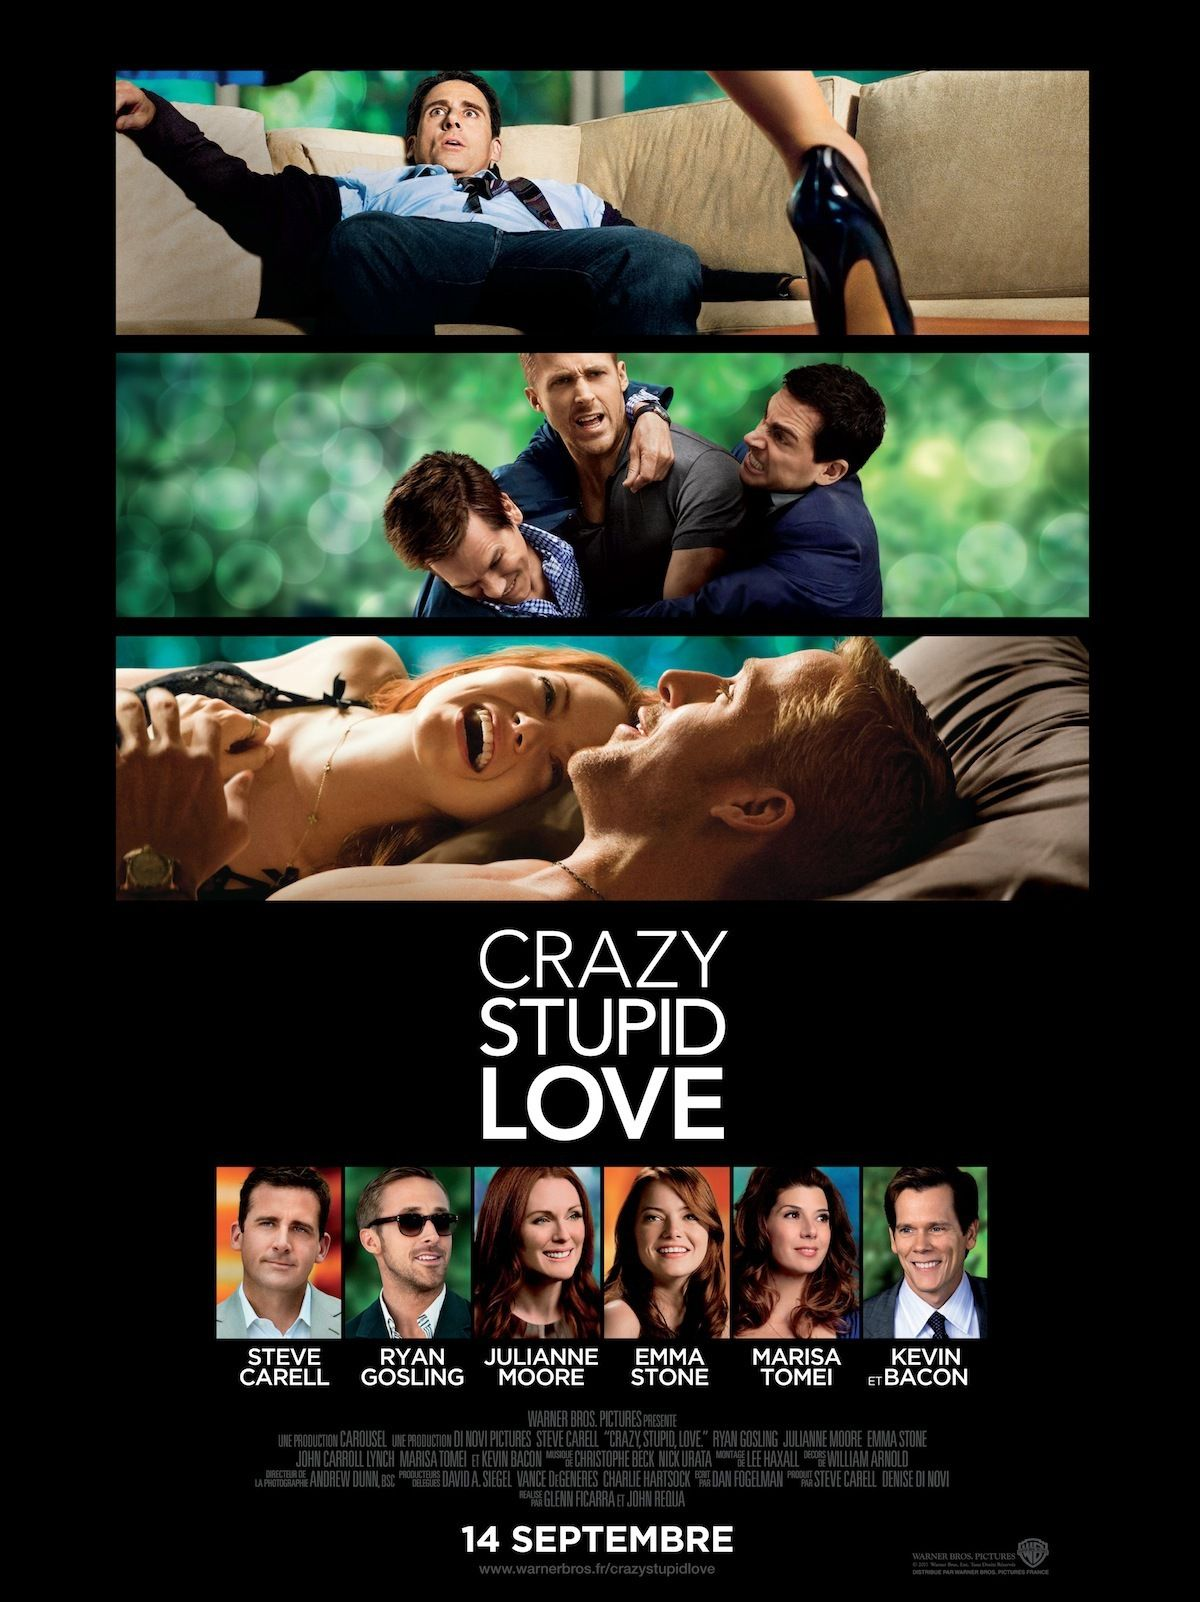 Crazy, Stupid, Love - Film (2011) streaming VF gratuit complet